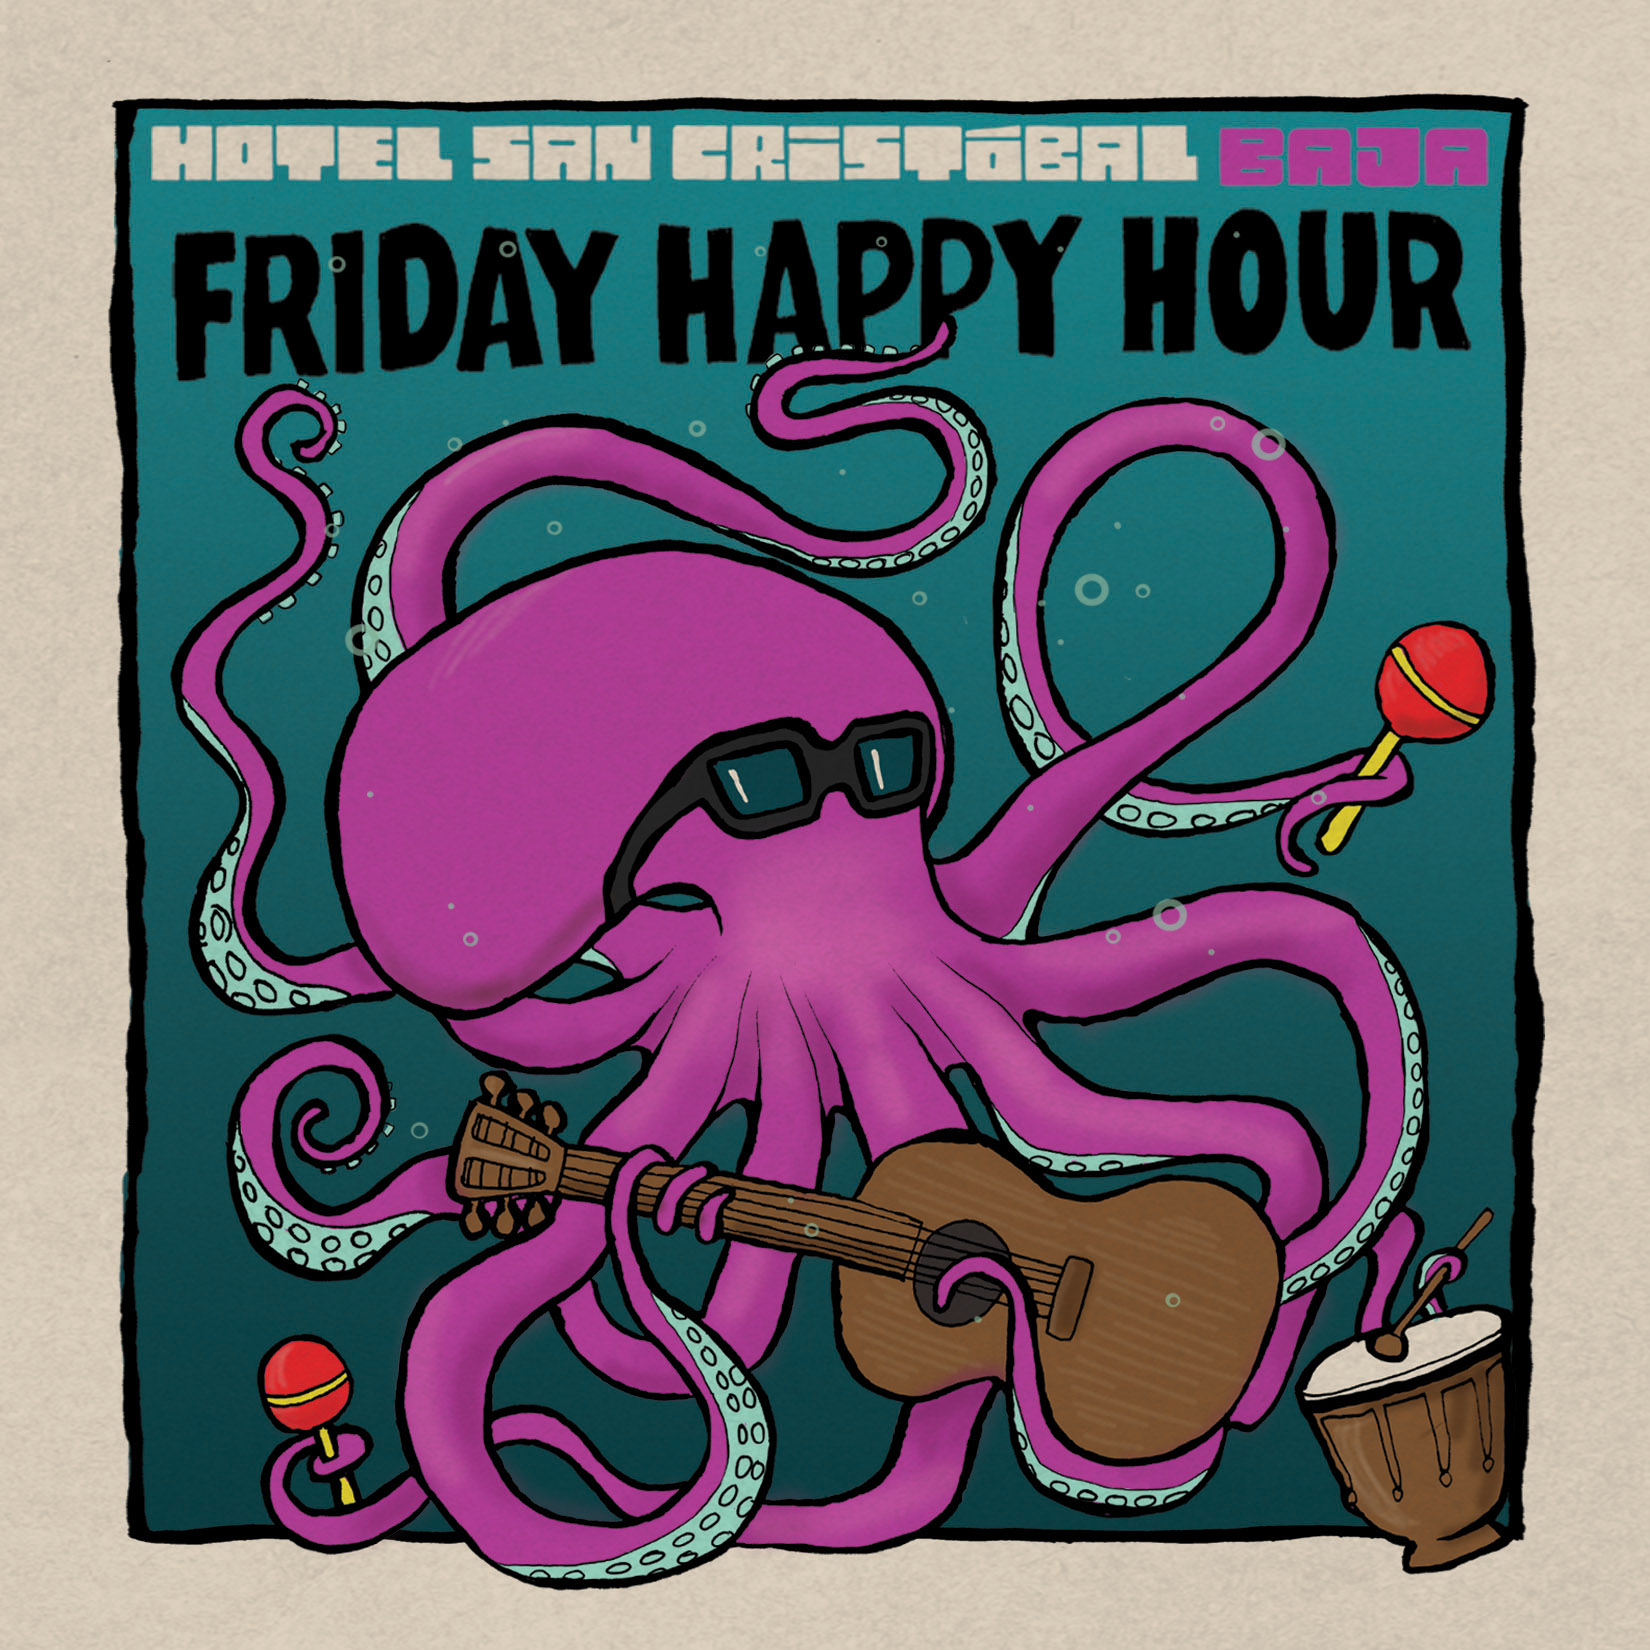 Click to read the full Friday Happy Hour with Live Music post